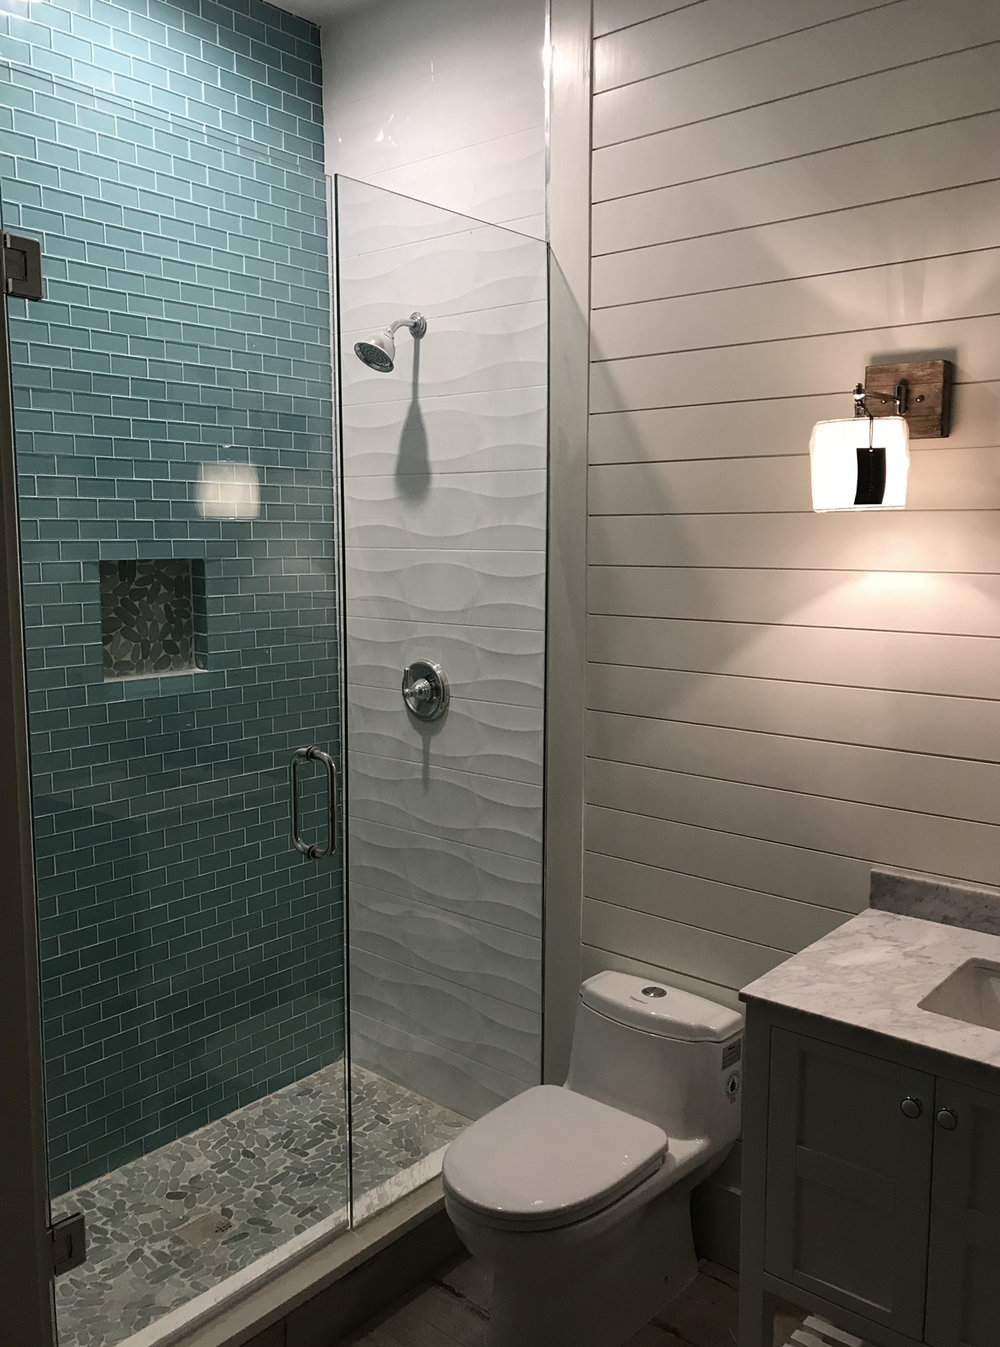 Montalvo Remodeling remodeled four bathrooms in this Fairview home.